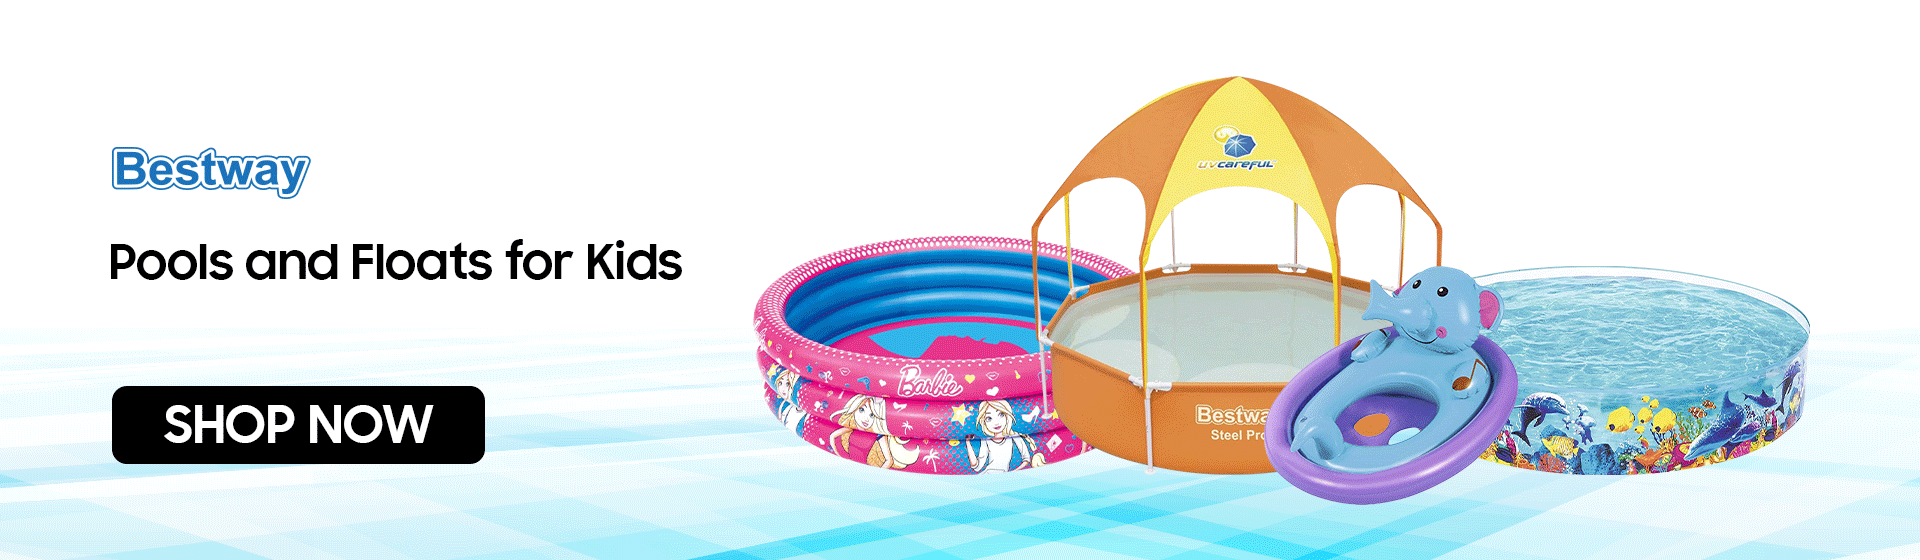 BestWay Pools and Floats